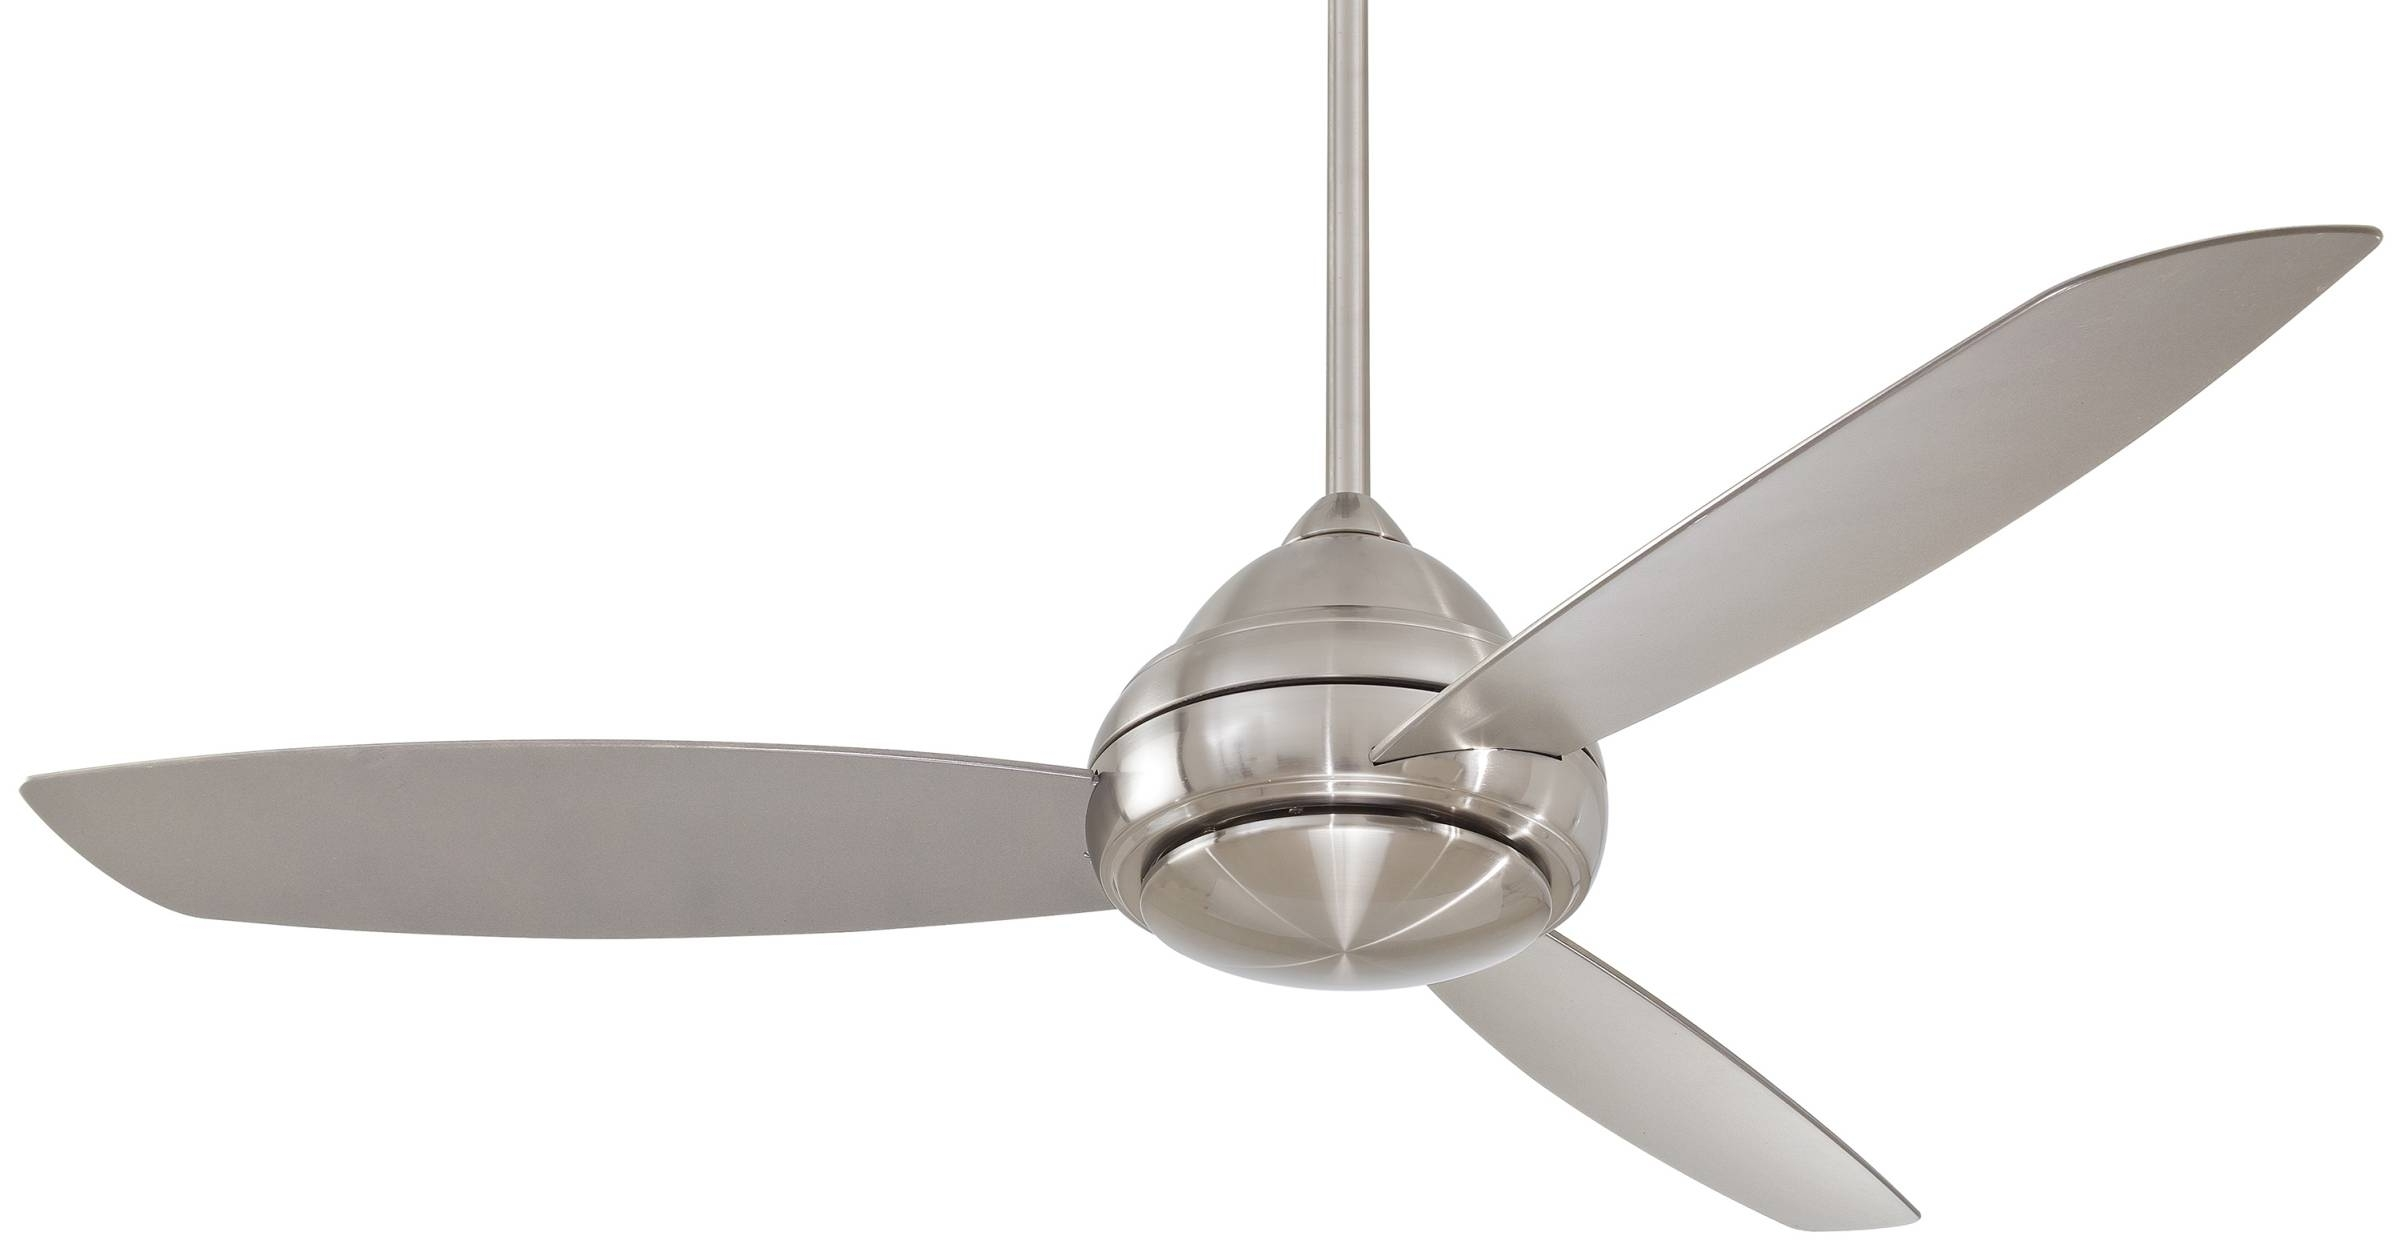 Fashionable Stainless Steel Outdoor Ceiling Fans With Light For Install Stainless Steel Outdoor Ceiling Fans Marine Grade 316 Large (View 20 of 20)